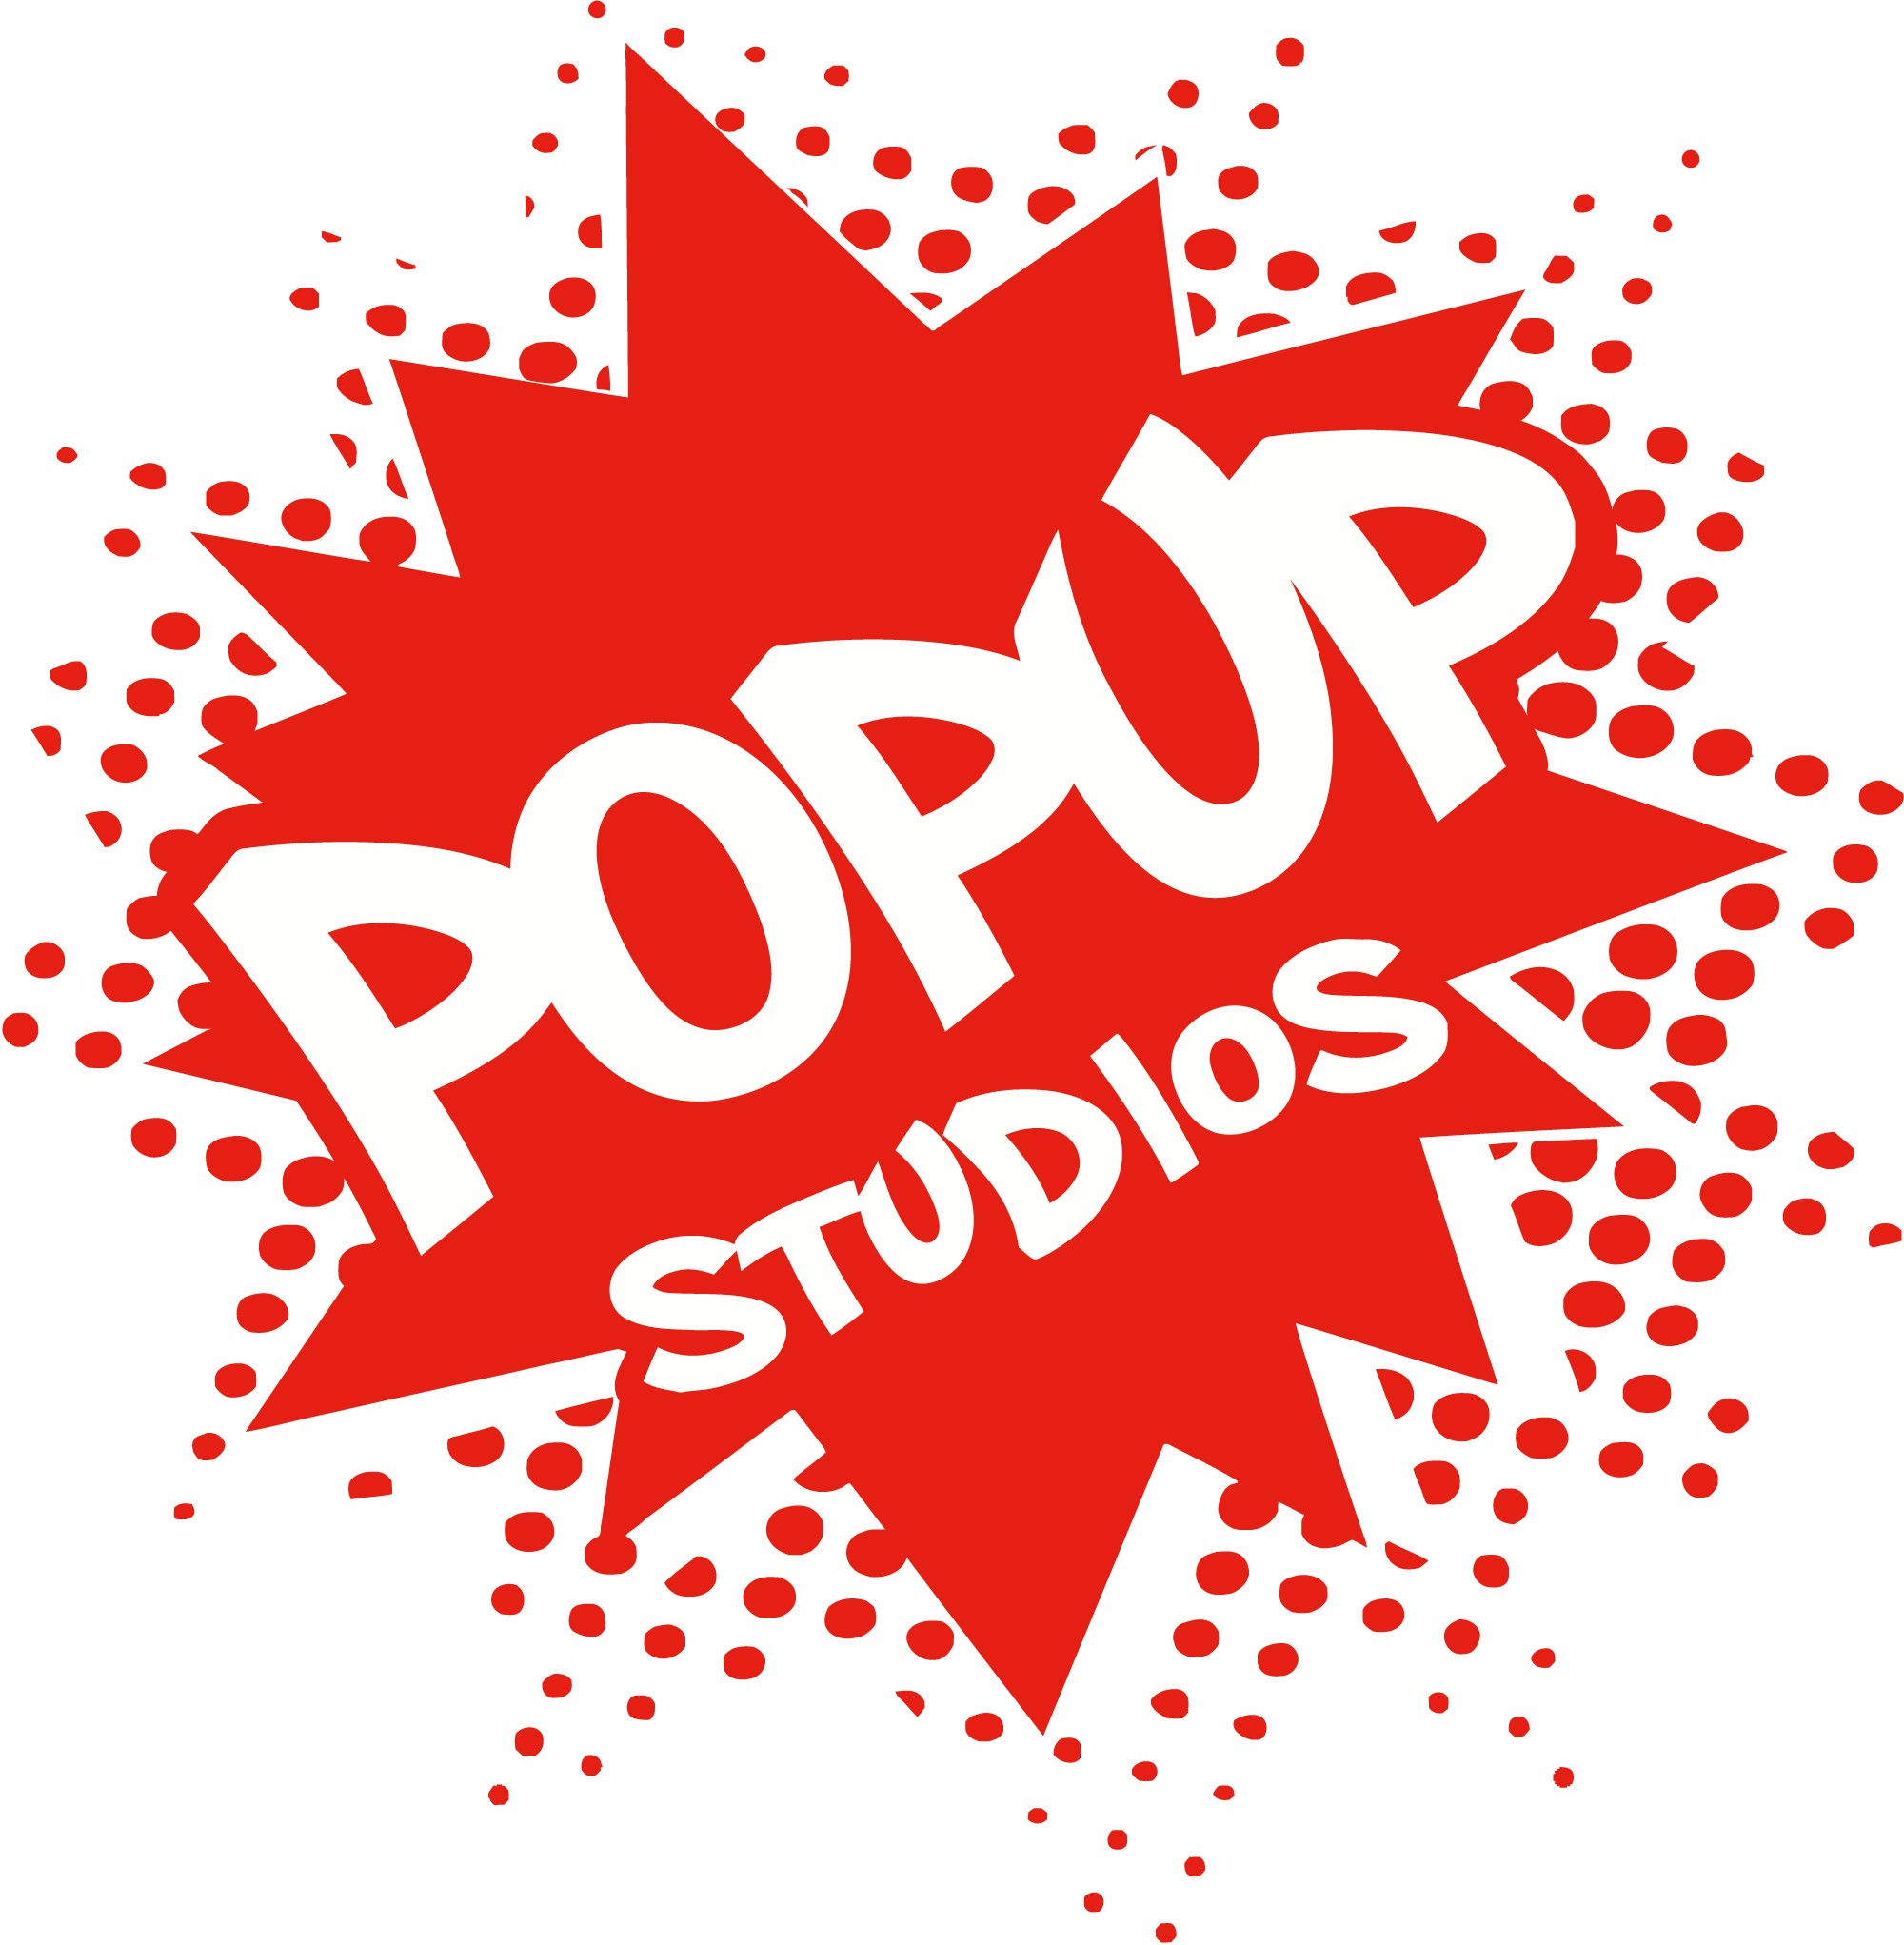 Popup Studios - an exciting new studio business for visual creatives!